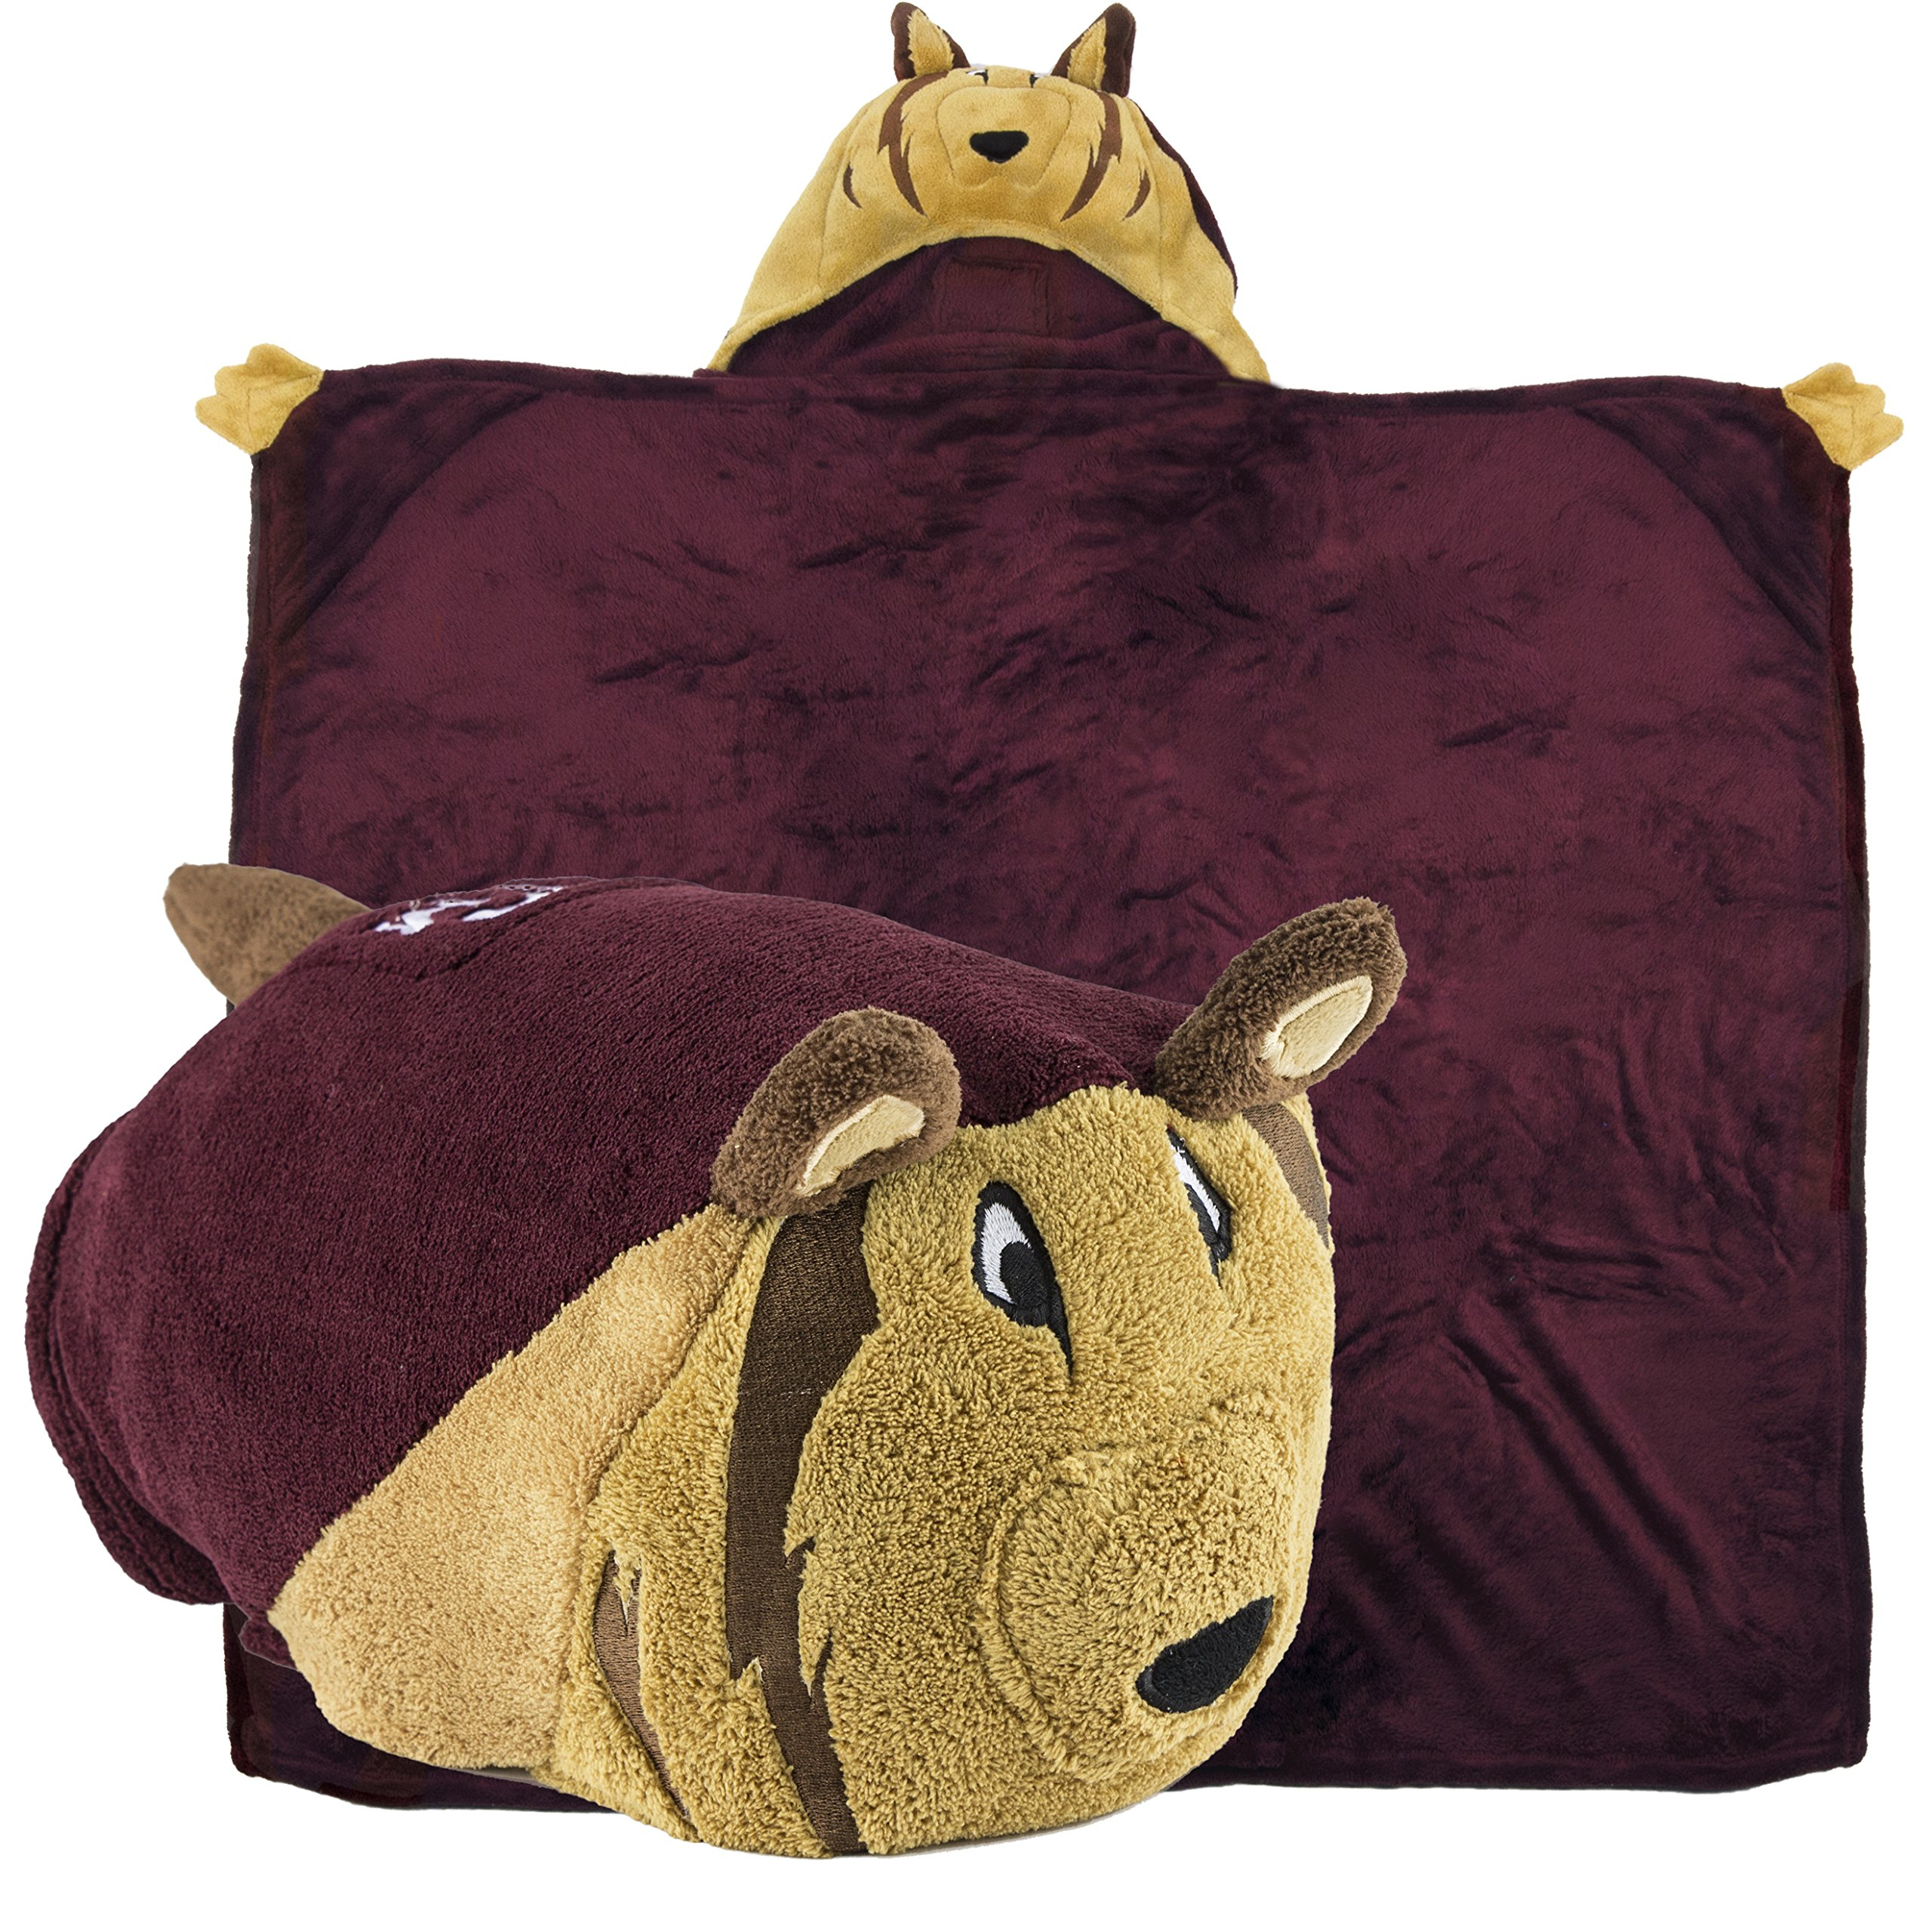 Comfy Critters Stuffed Animal Blanket - College Mascot, Texas A&M University 'Reveille' - Kids Huggable Pillow and Blanket Perfect for The Big Game, Tailgating, Pretend Play, Travel, and Much More